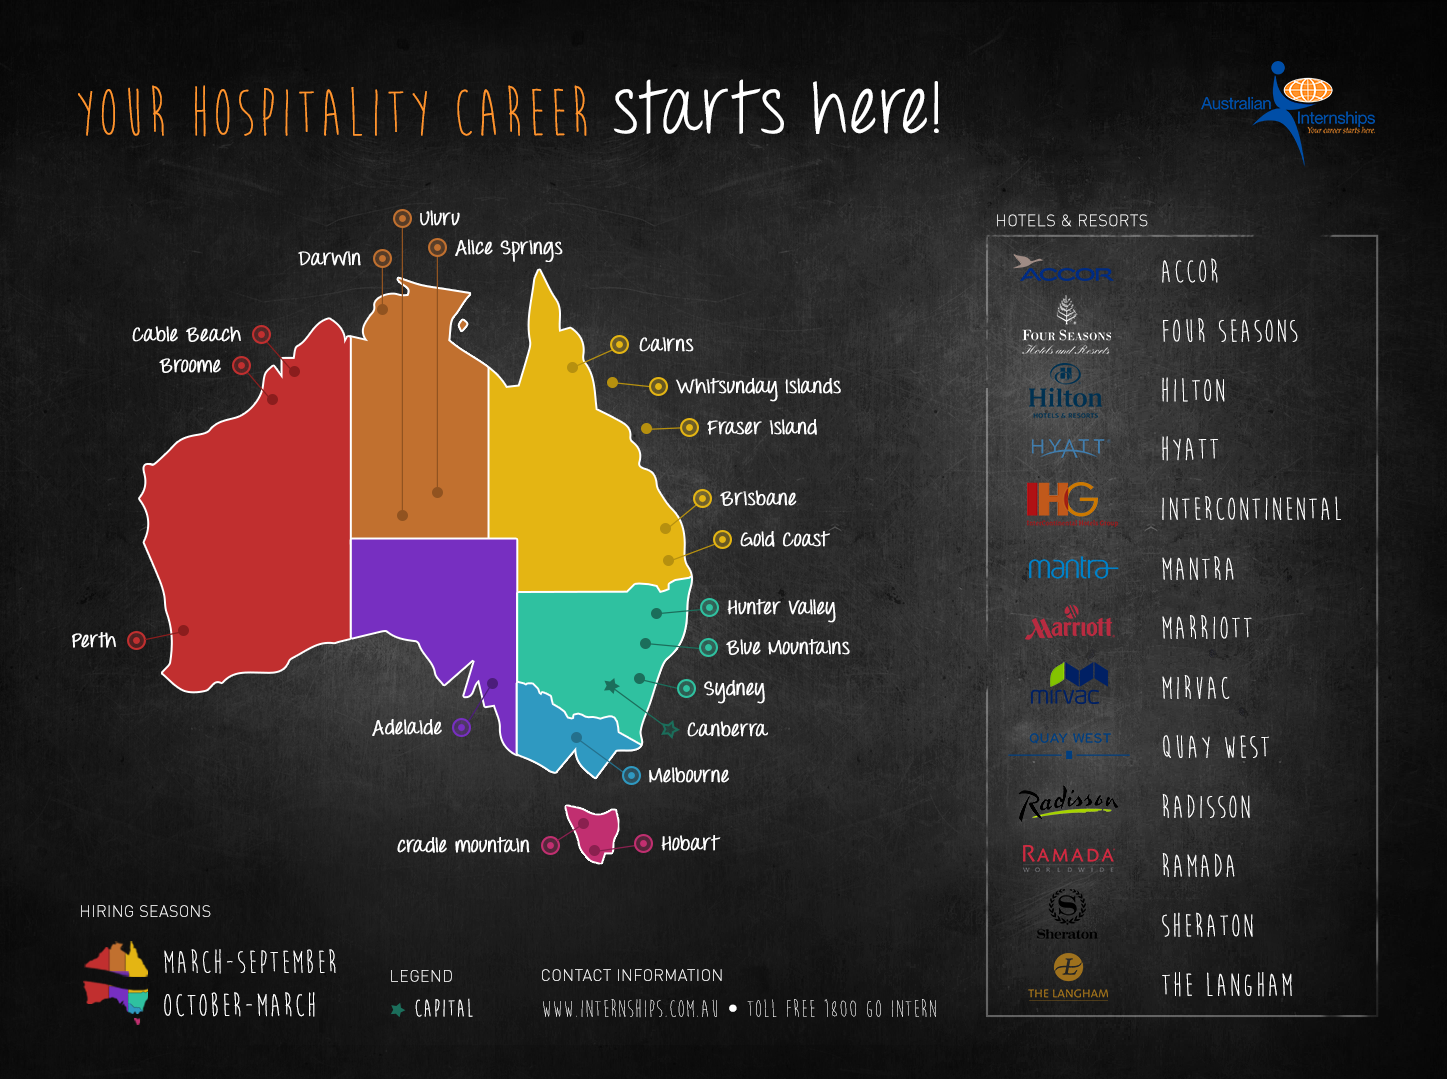 Please download the Australian Hospitality Overview for a better  understanding of the locations and peak hiring seasons.